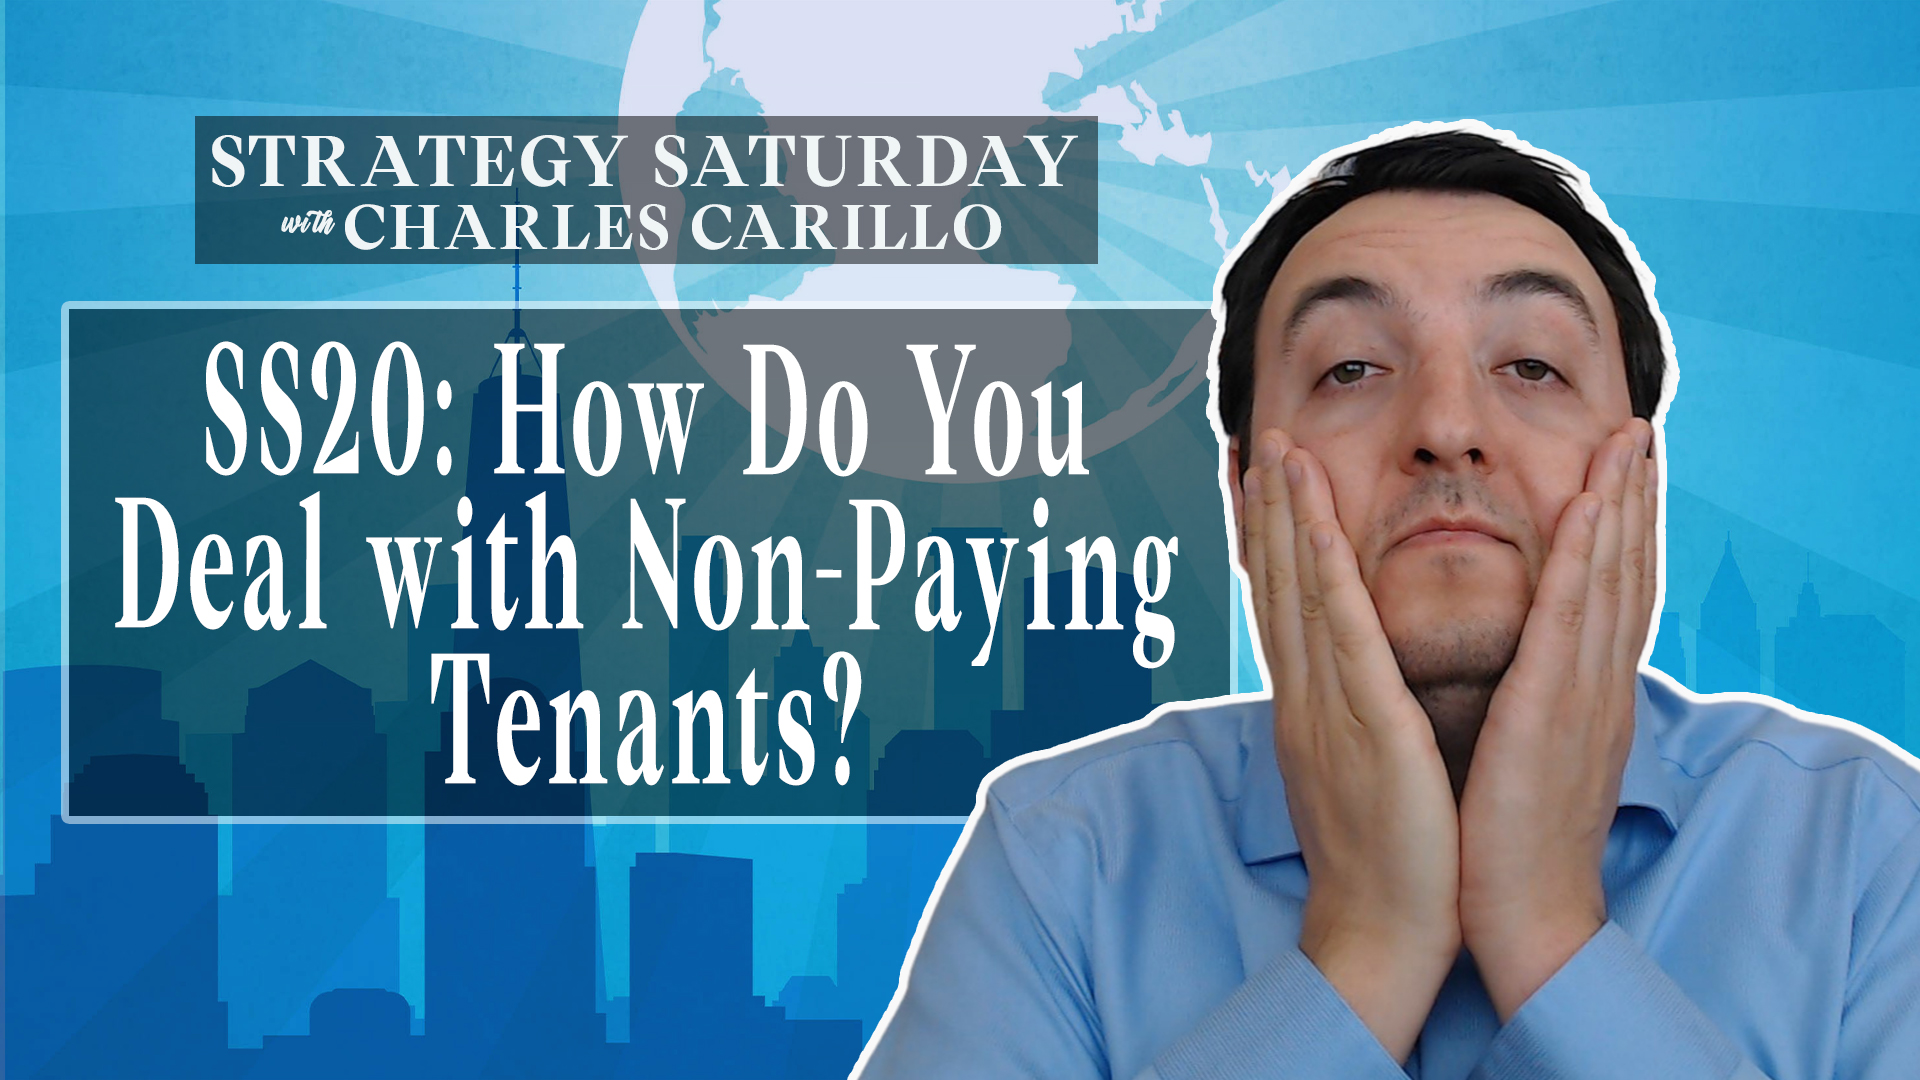 SS20: How Do You Deal with Non-Paying Tenants?